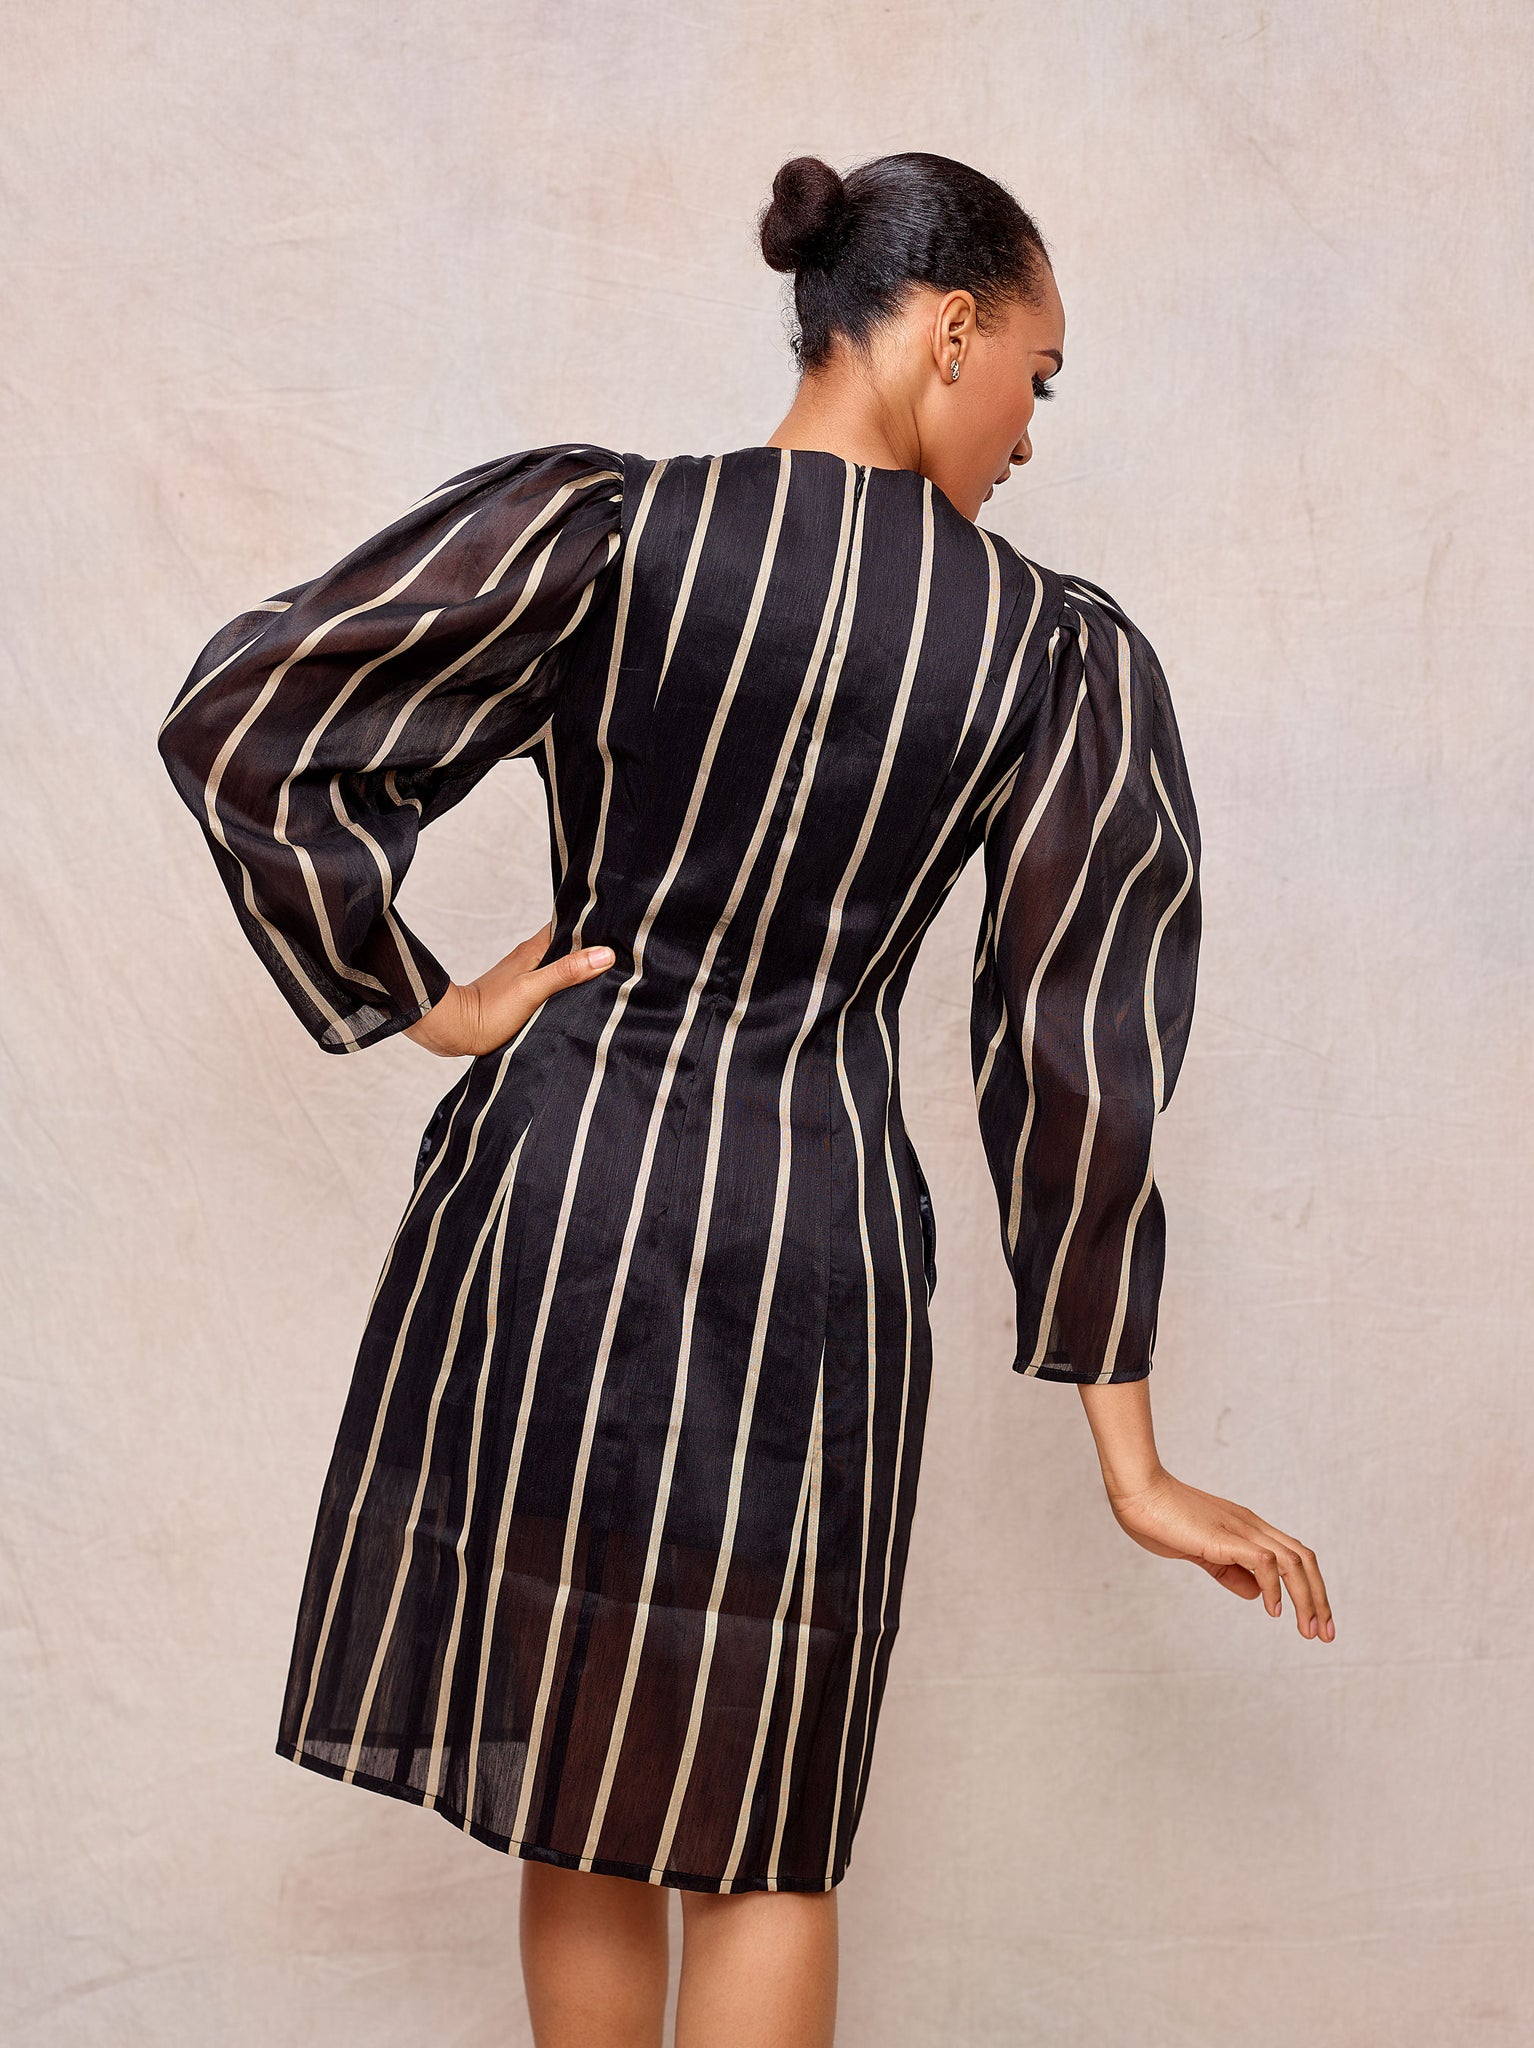 Long Sleeve Striped Linen Dress - April & Alex